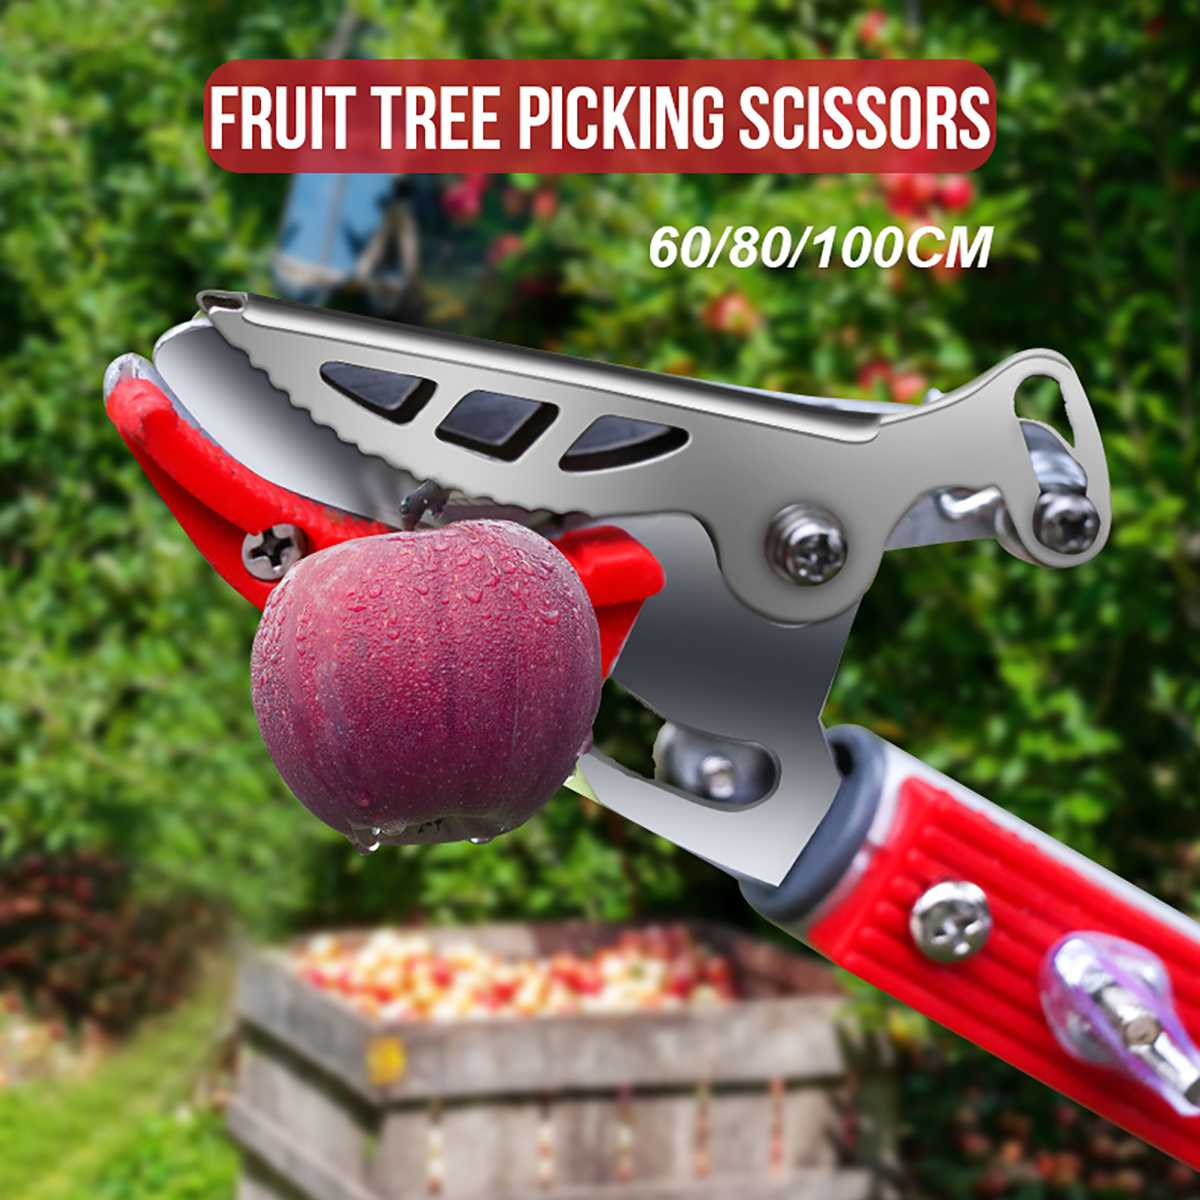 60/80/100cm Extra Long Reach Pruner Cut And Hold Bypass Pruner Max Cutting 1/2 Inch Fruit Picker And Tree Cutter For Garden